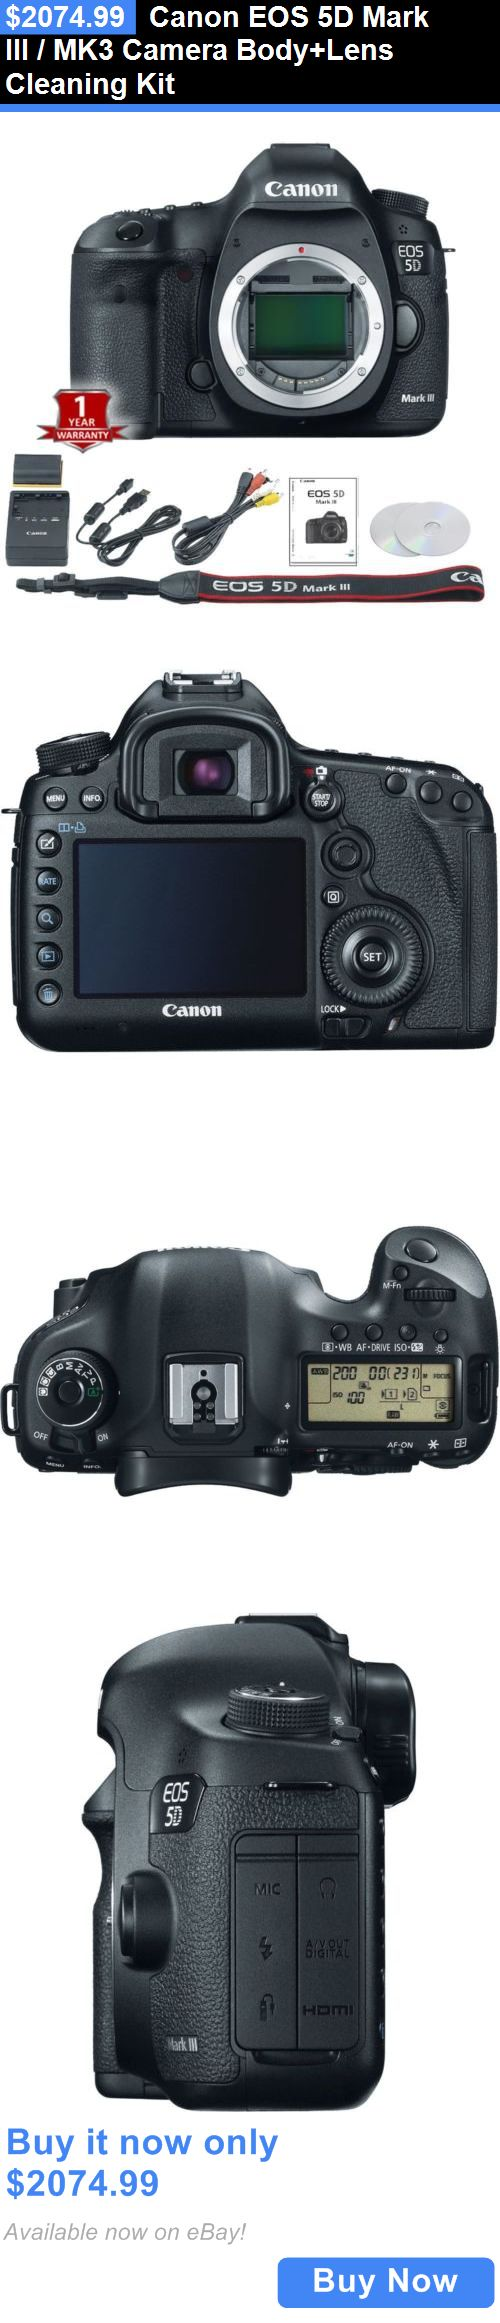 photo and video: Canon Eos 5D Mark Iii / Mk3 Camera Body+Lens Cleaning Kit BUY IT NOW ONLY: $2074.99